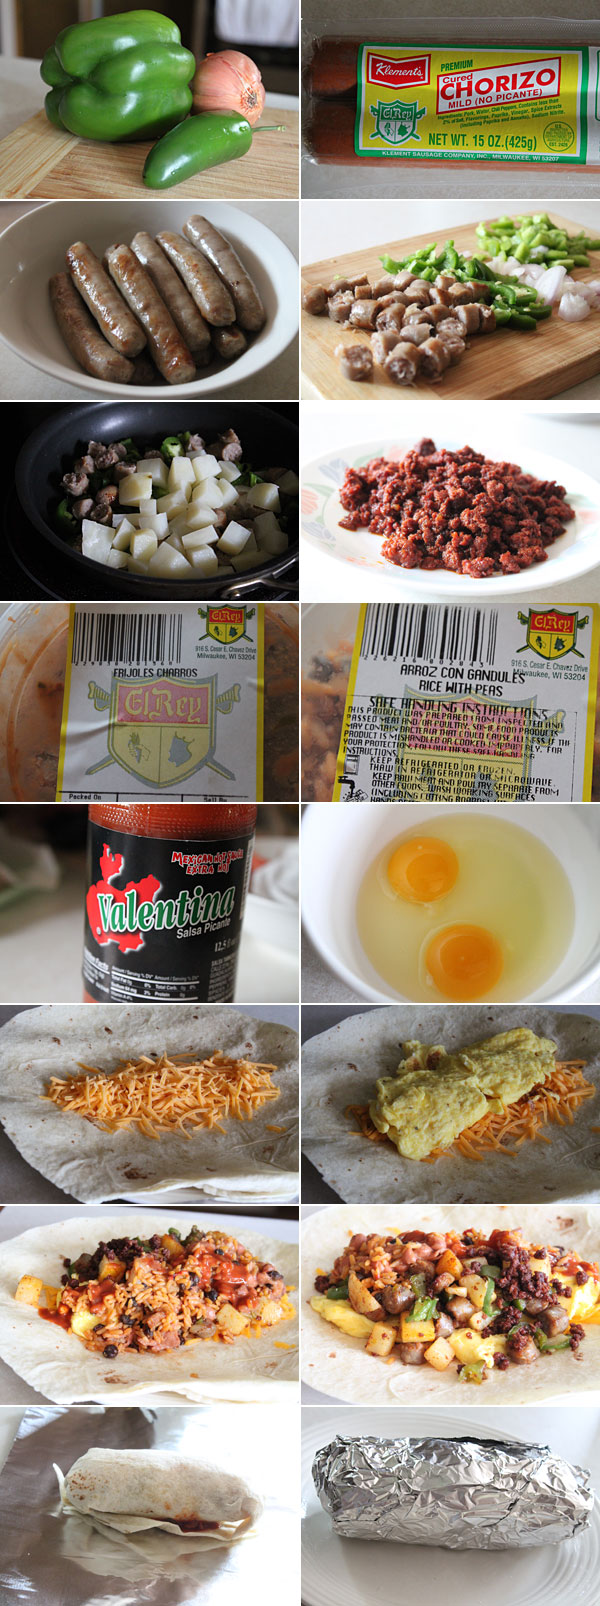 Ingredients for making the ultimate breakfast burrito